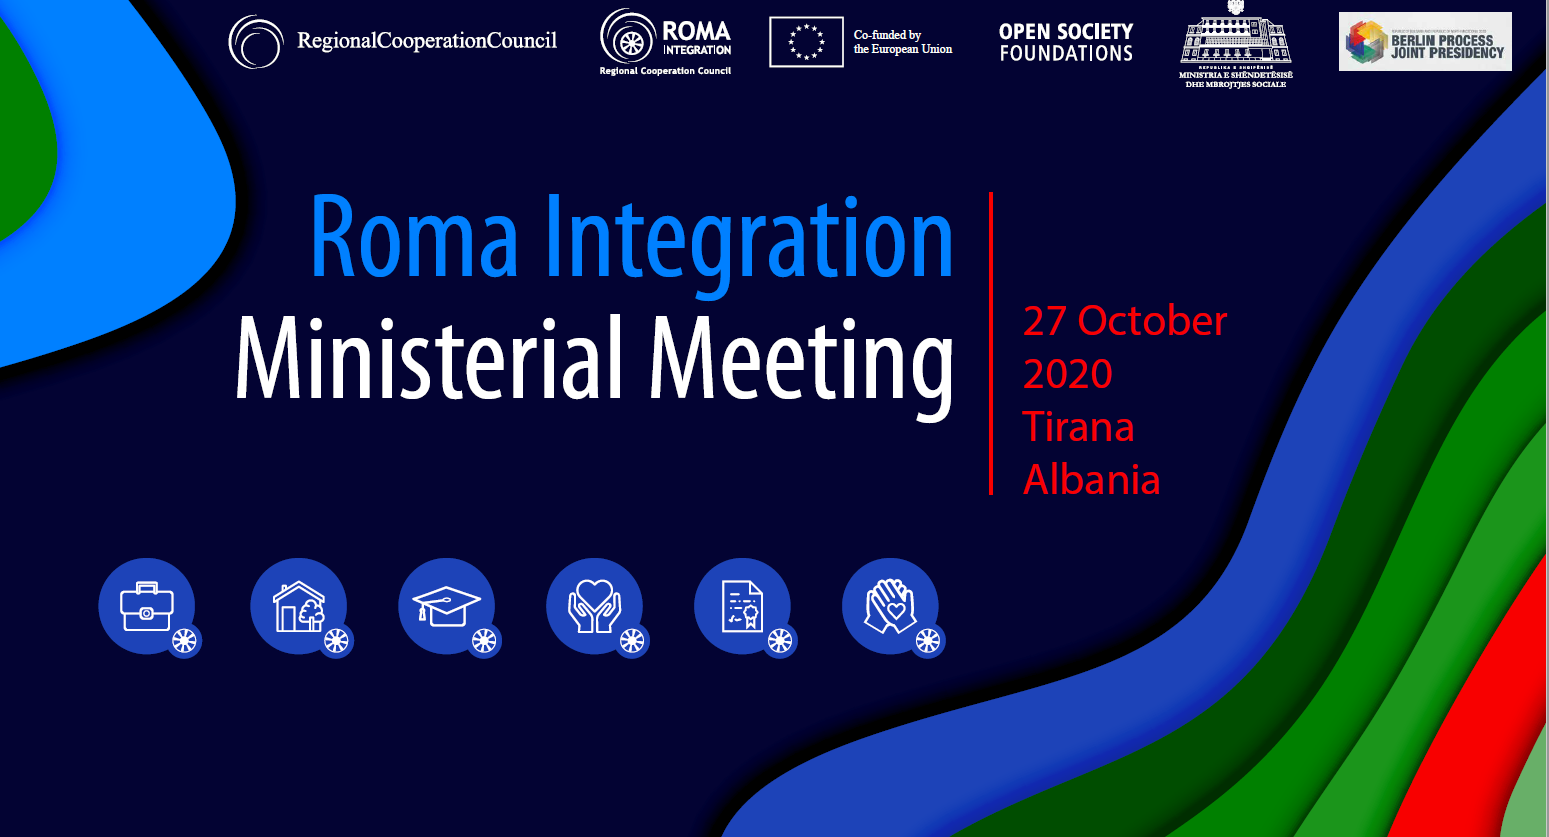 Tirana hosts Ministerial Meeting on Roma Integration on 27 October 2020, with housing, civil registration, data collection & budgeting in focus